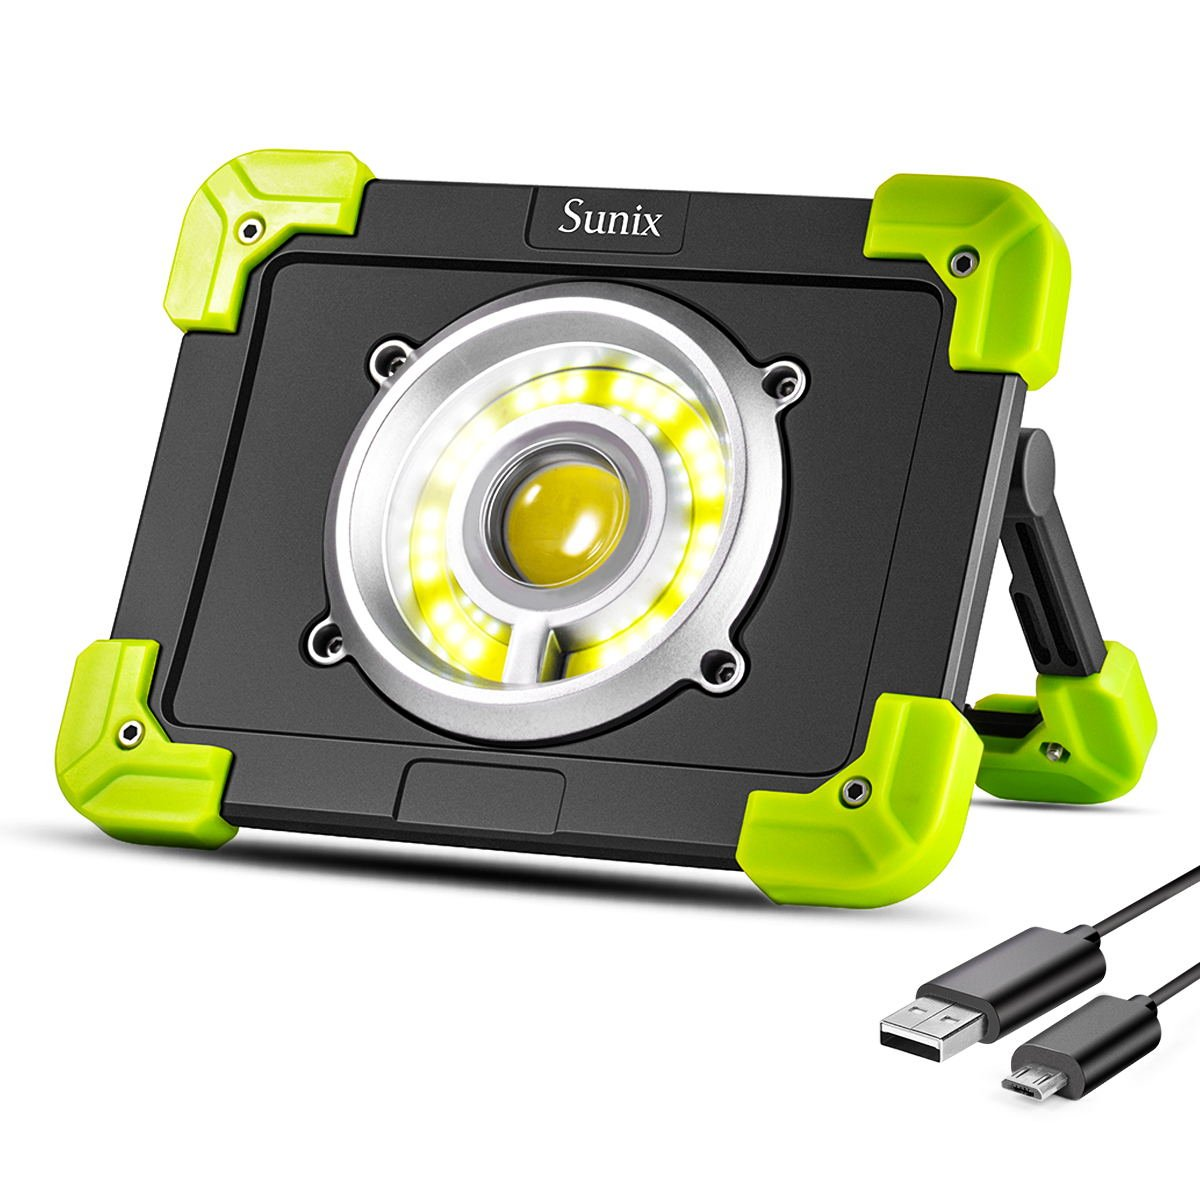 Sunix 20W Portable LED Work Light, LED Emergency Lights, Spotlight Camping Light, 1500LM 6000 mAh Built-in Rechargeable Batteries with Dual USB Port and Emergency SOS Mode SU-SU616-ITFBA